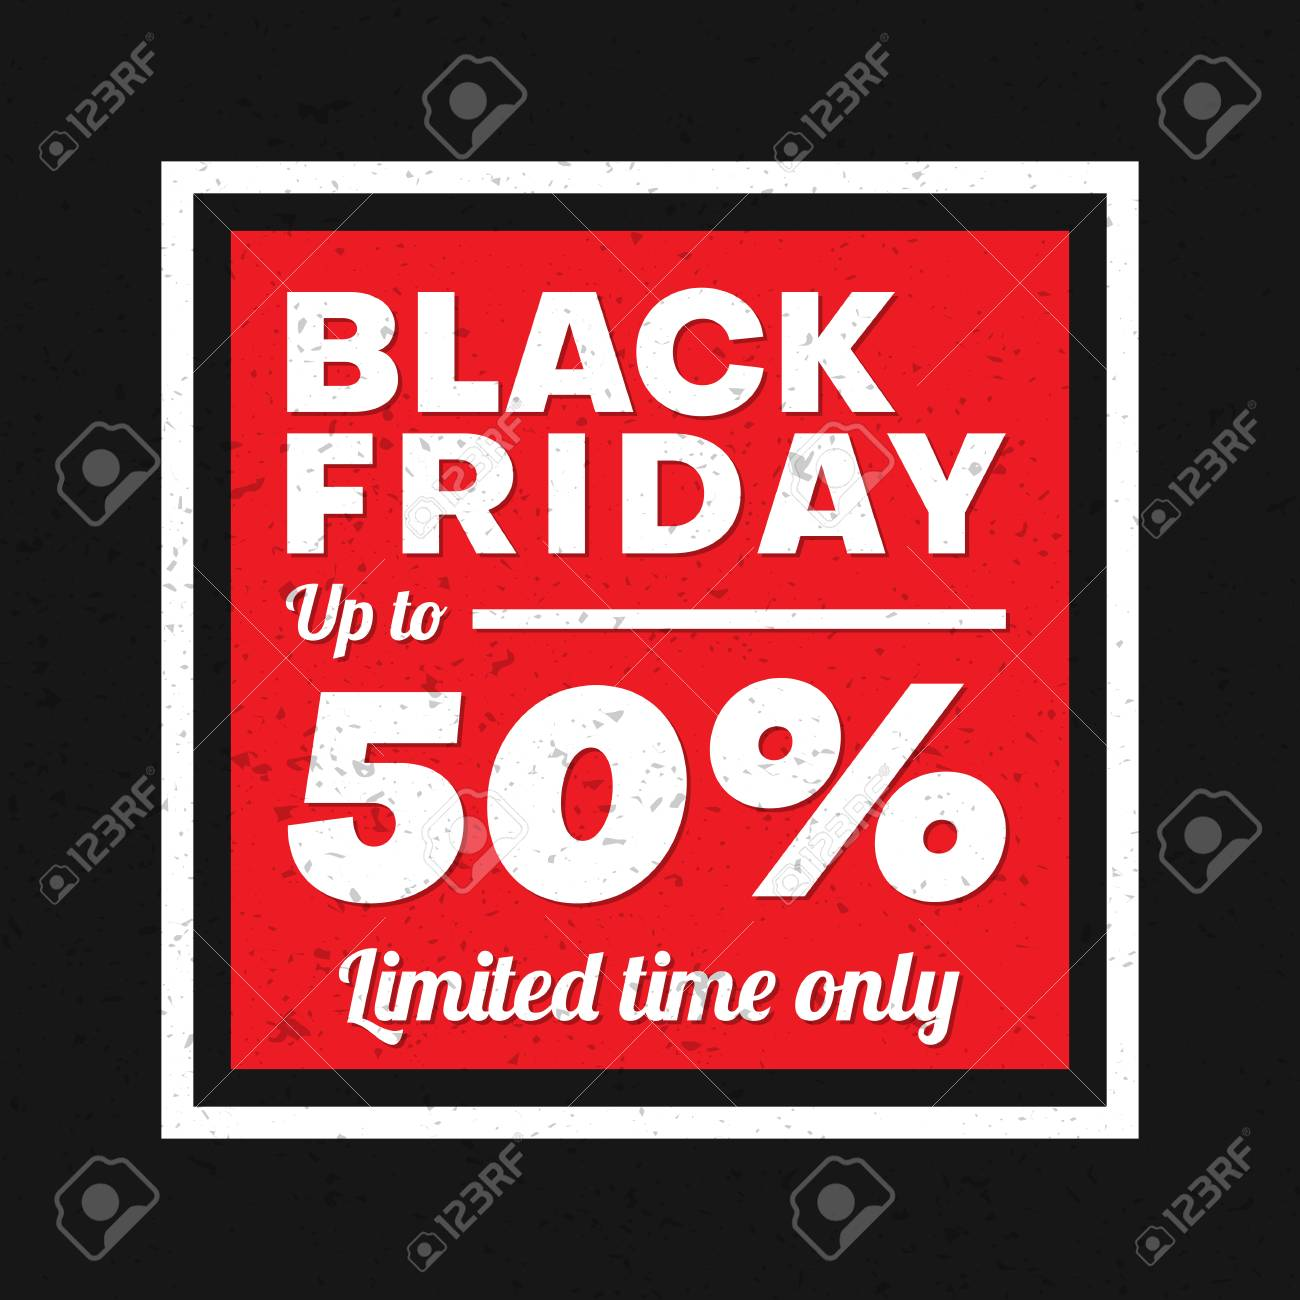 Black Friday Sale Promo Poster Discount Up To 50 Percent Limited Royalty Free Cliparts Vectors And Stock Illustration Image 108150552